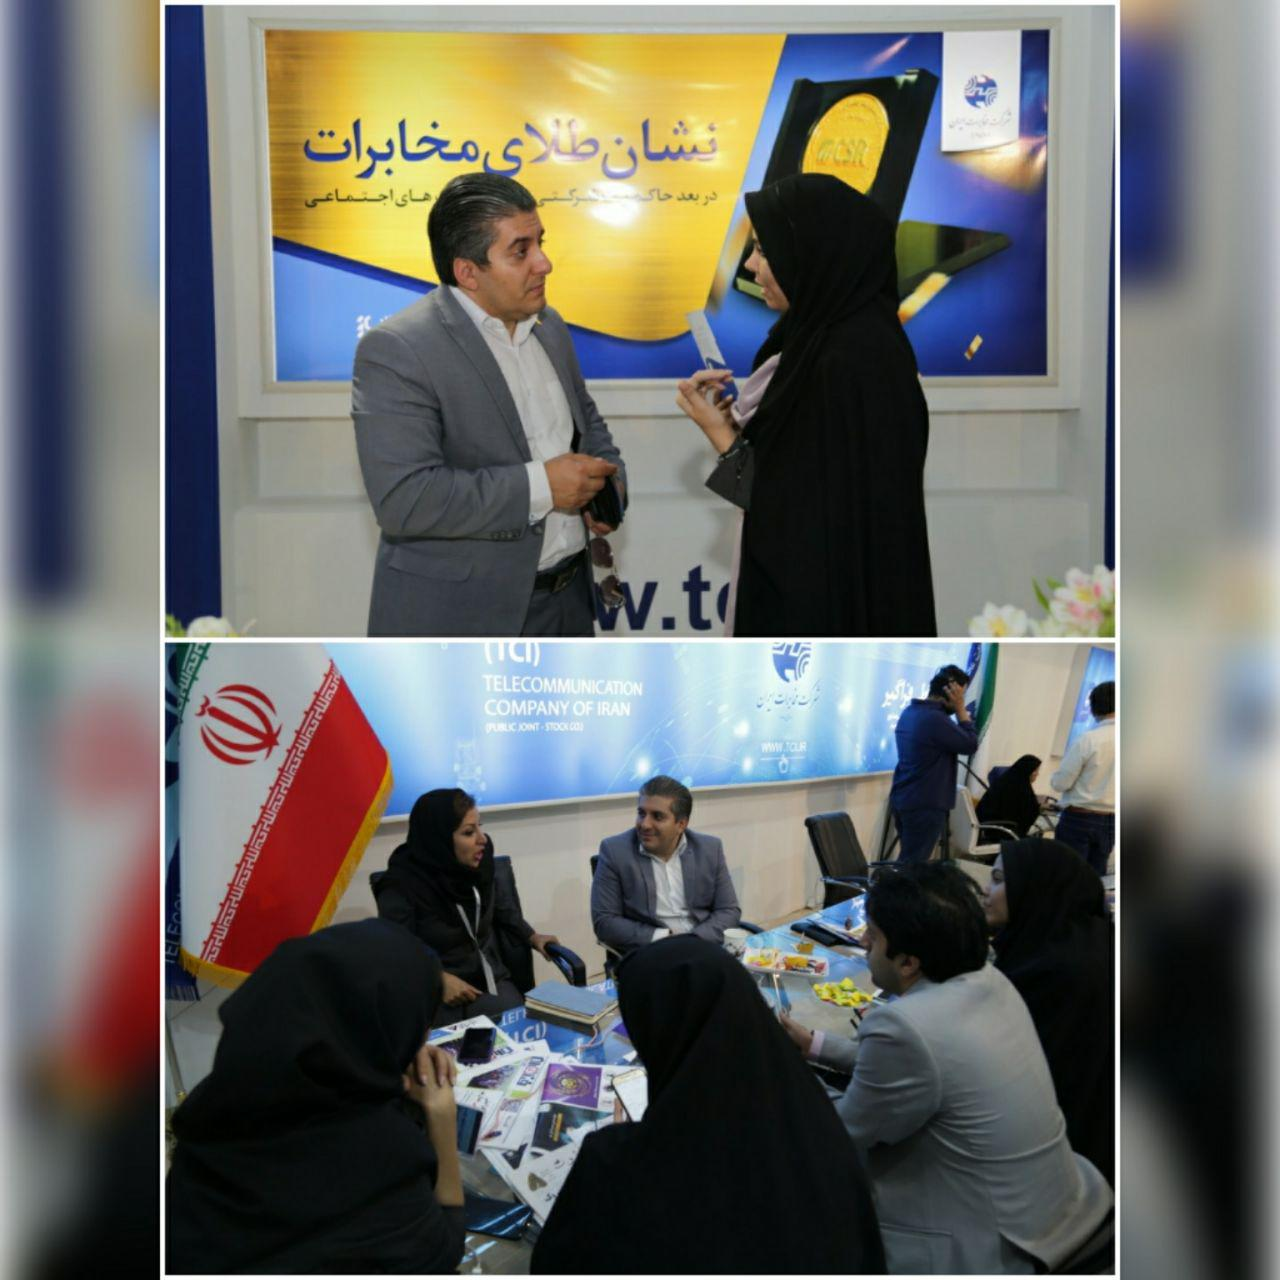 Hama Group visit from Telecommunication Company of Iran booth in Telecom Exhibition